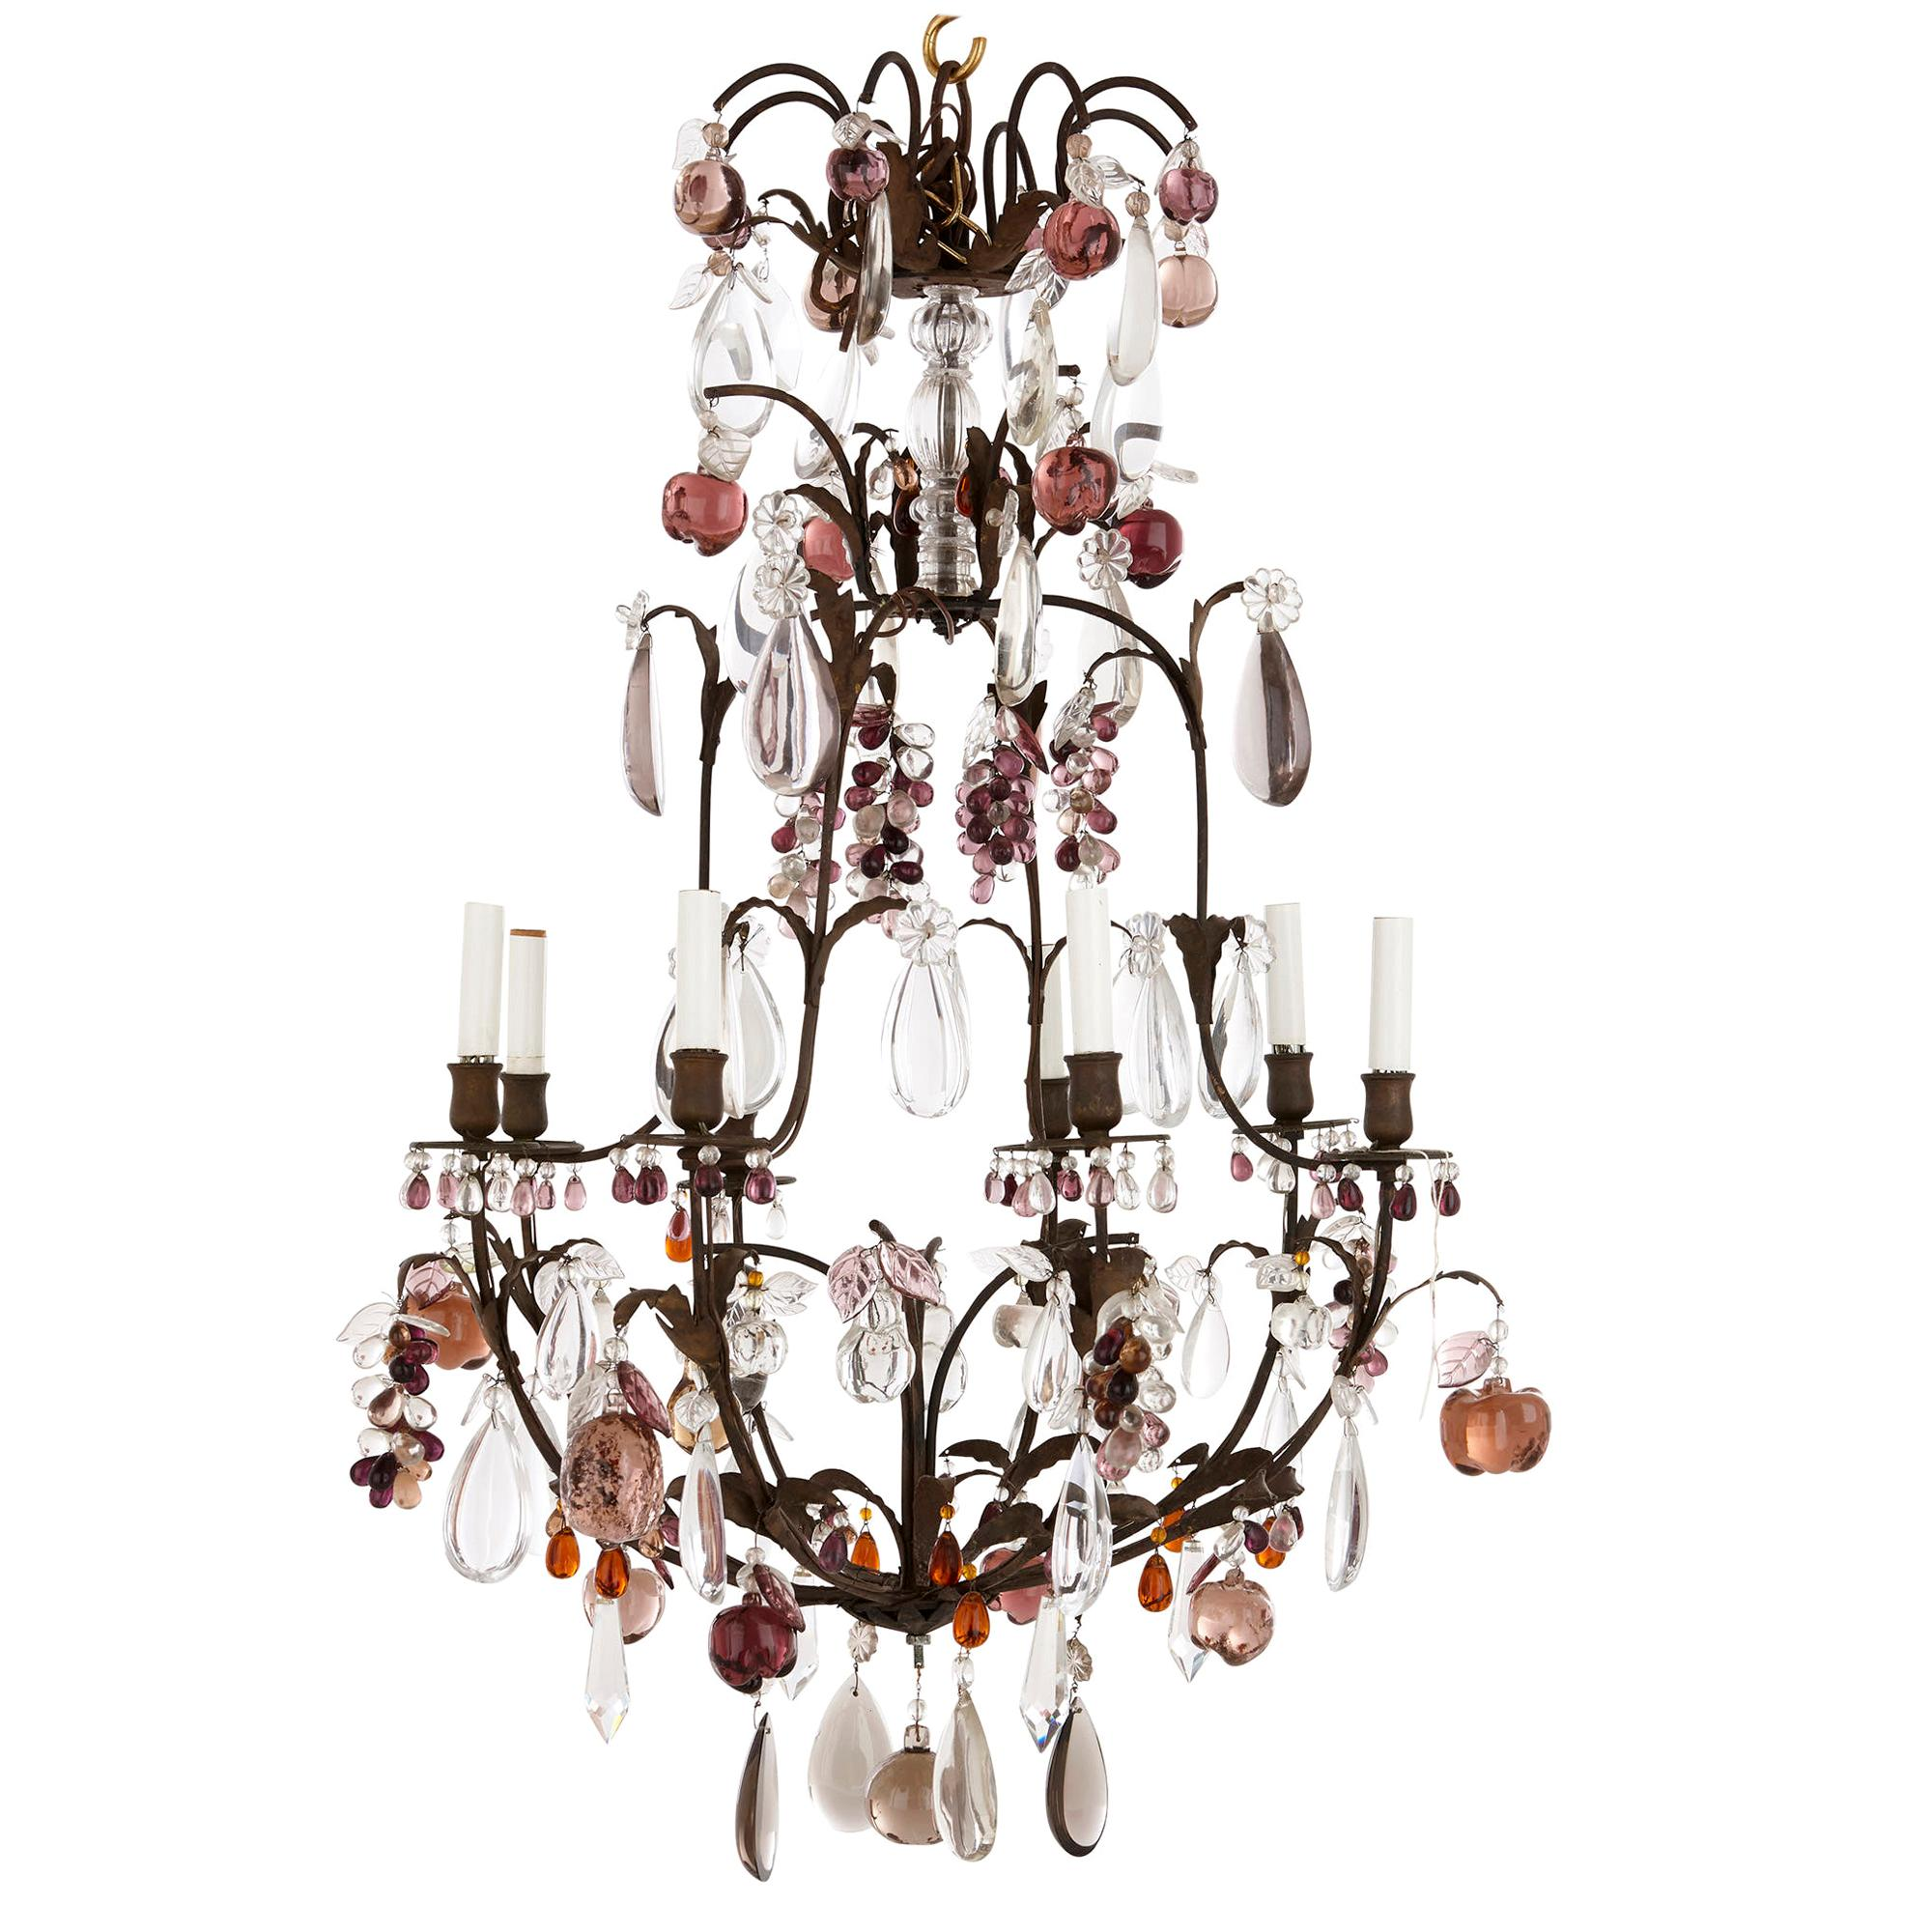 Chandelier with Colored Rock Crystal, Quartz and Glass Fruit Pendants